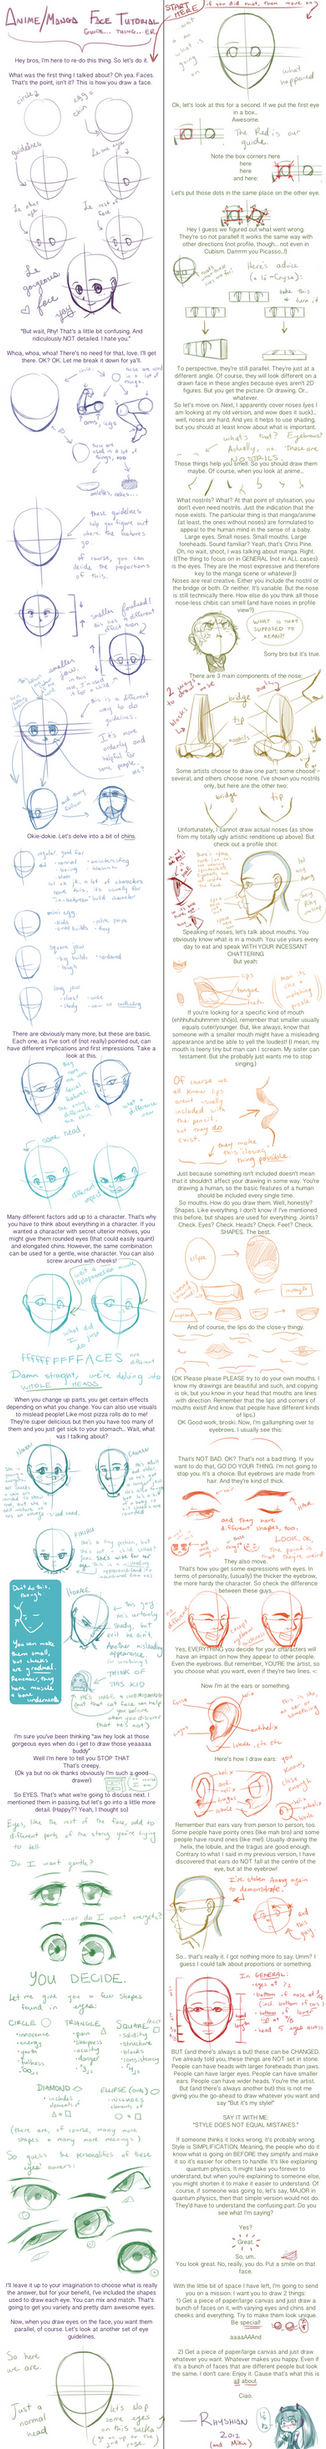 Face/Head Tutorial (Anime/Manga) v.2.0.3 by Rhyshian